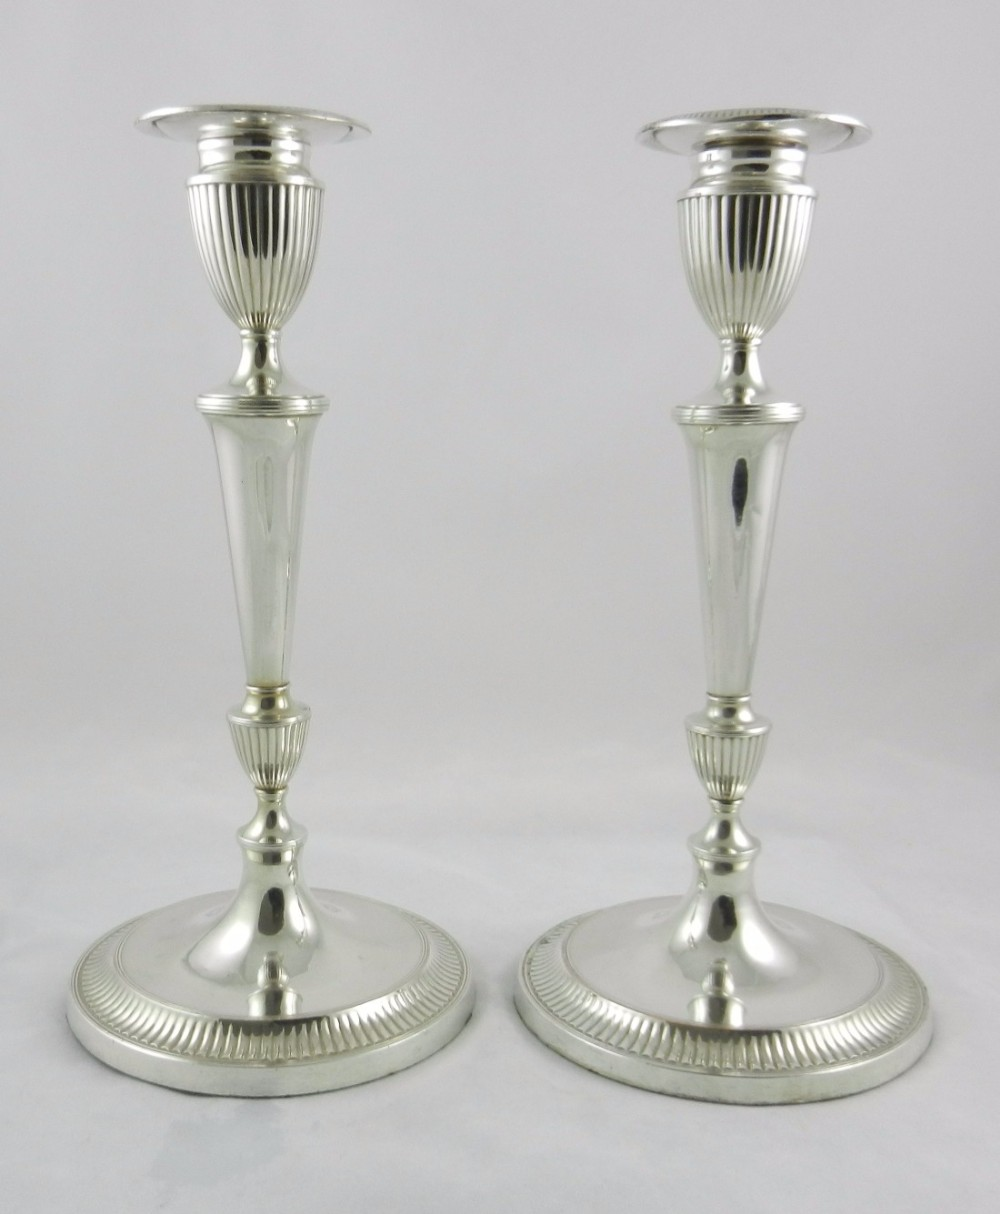 antique silverplated candlesticks